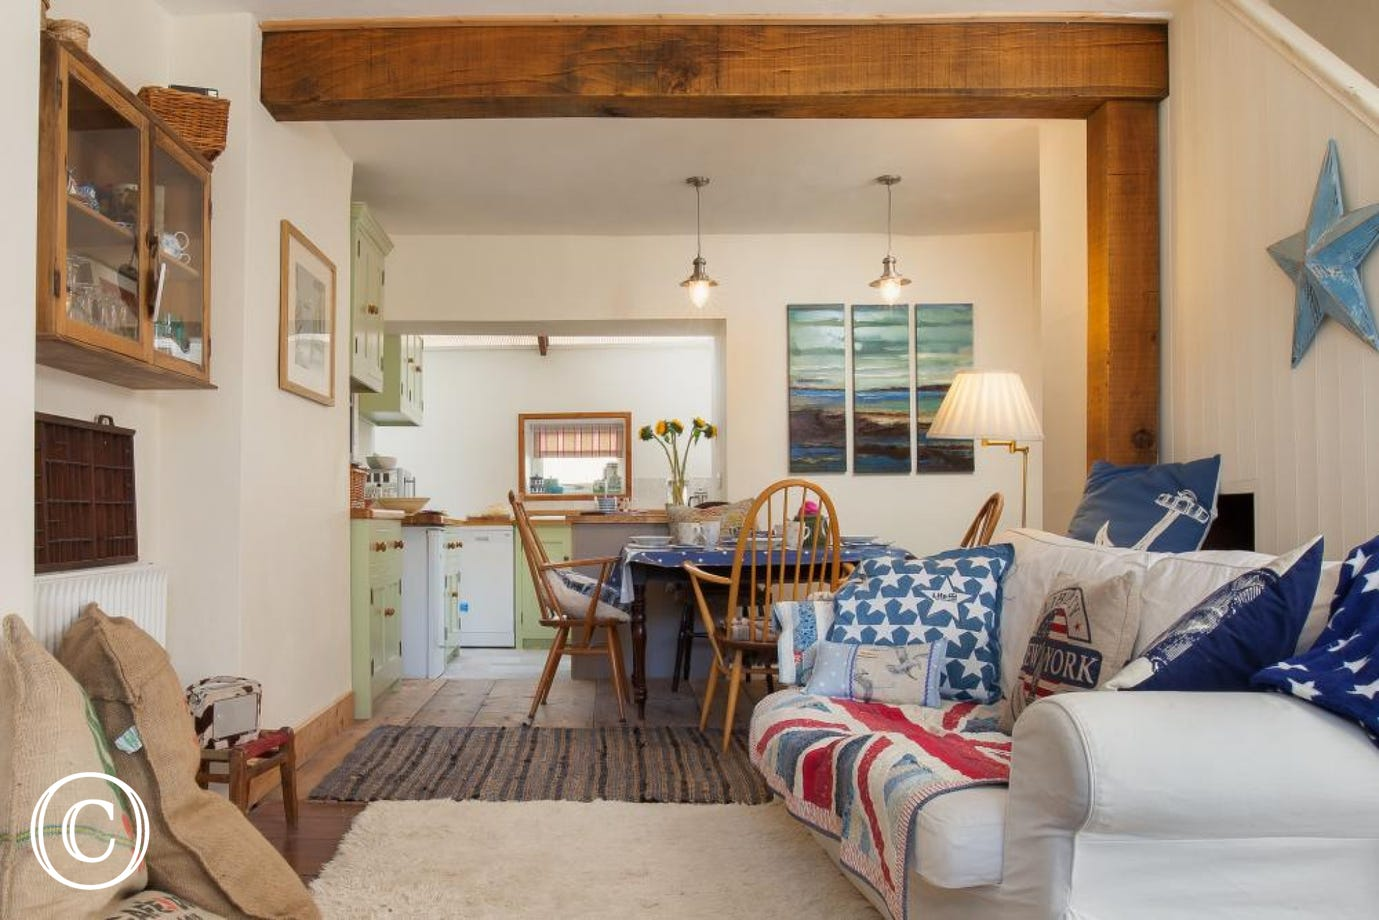 Star Cottage, Shaldon - Living area with sofa 2